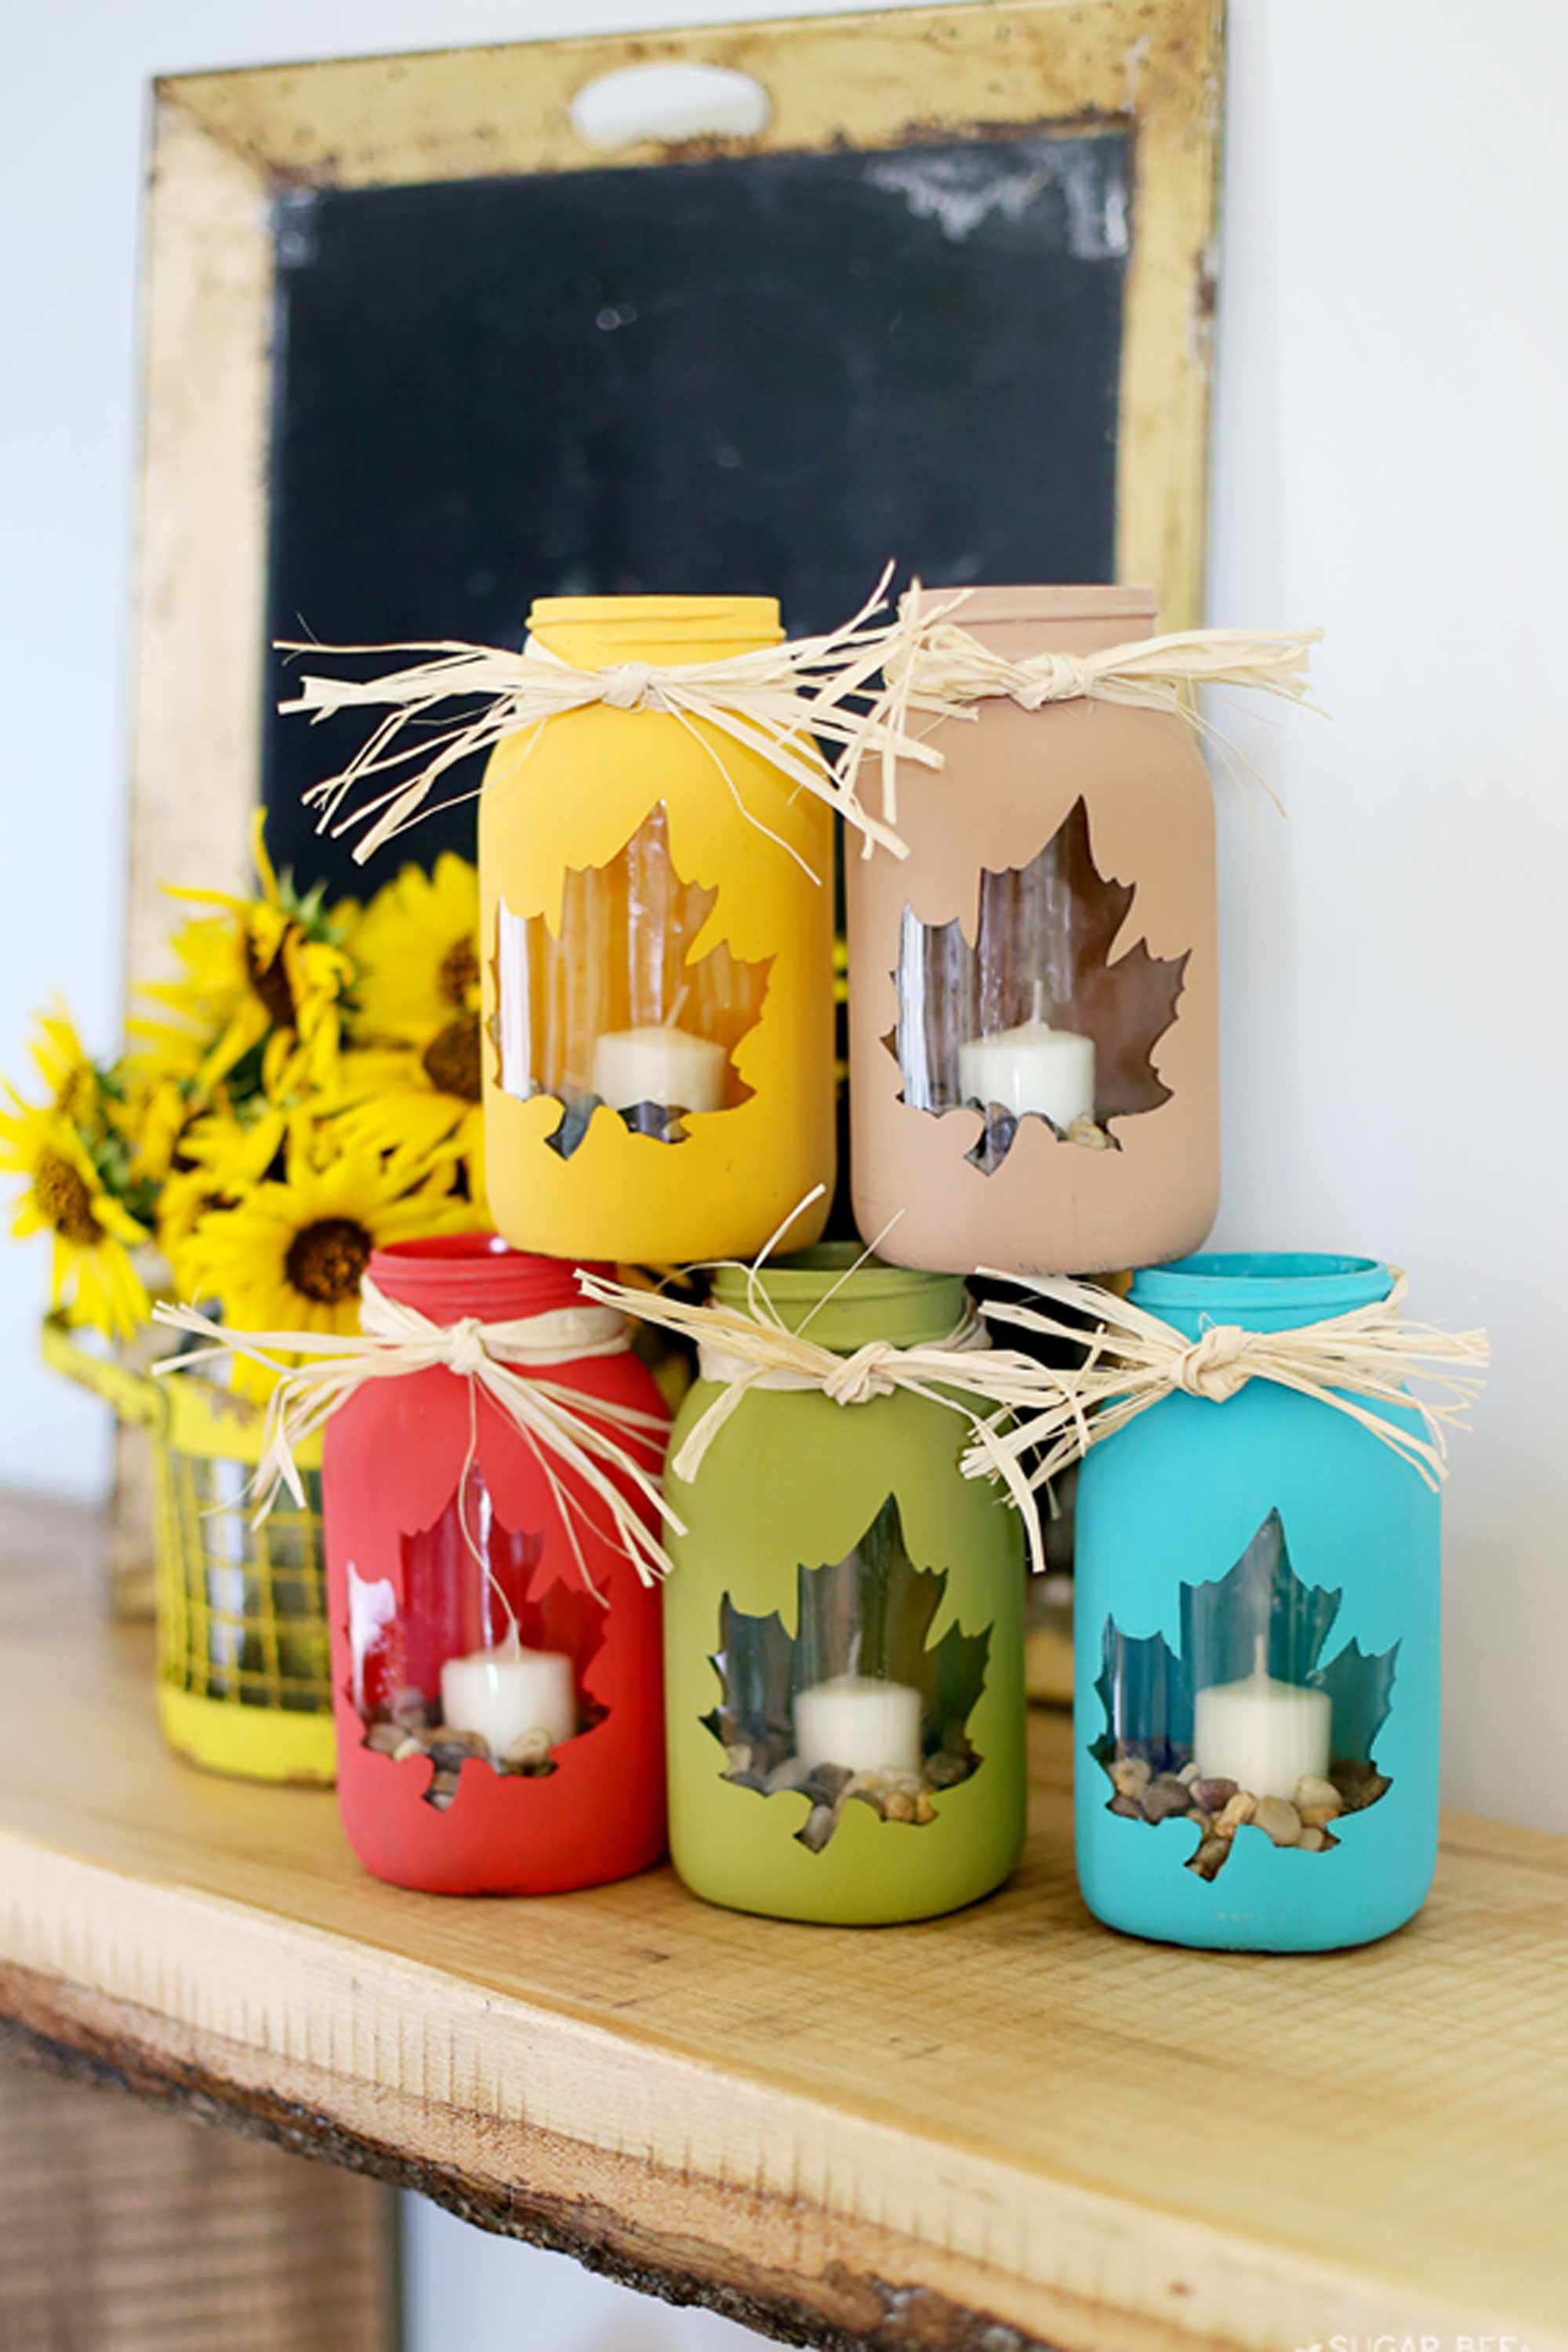 Craft 30 Mason Jar Fall Crafts Autumn Diy Ideas With Mason Jars